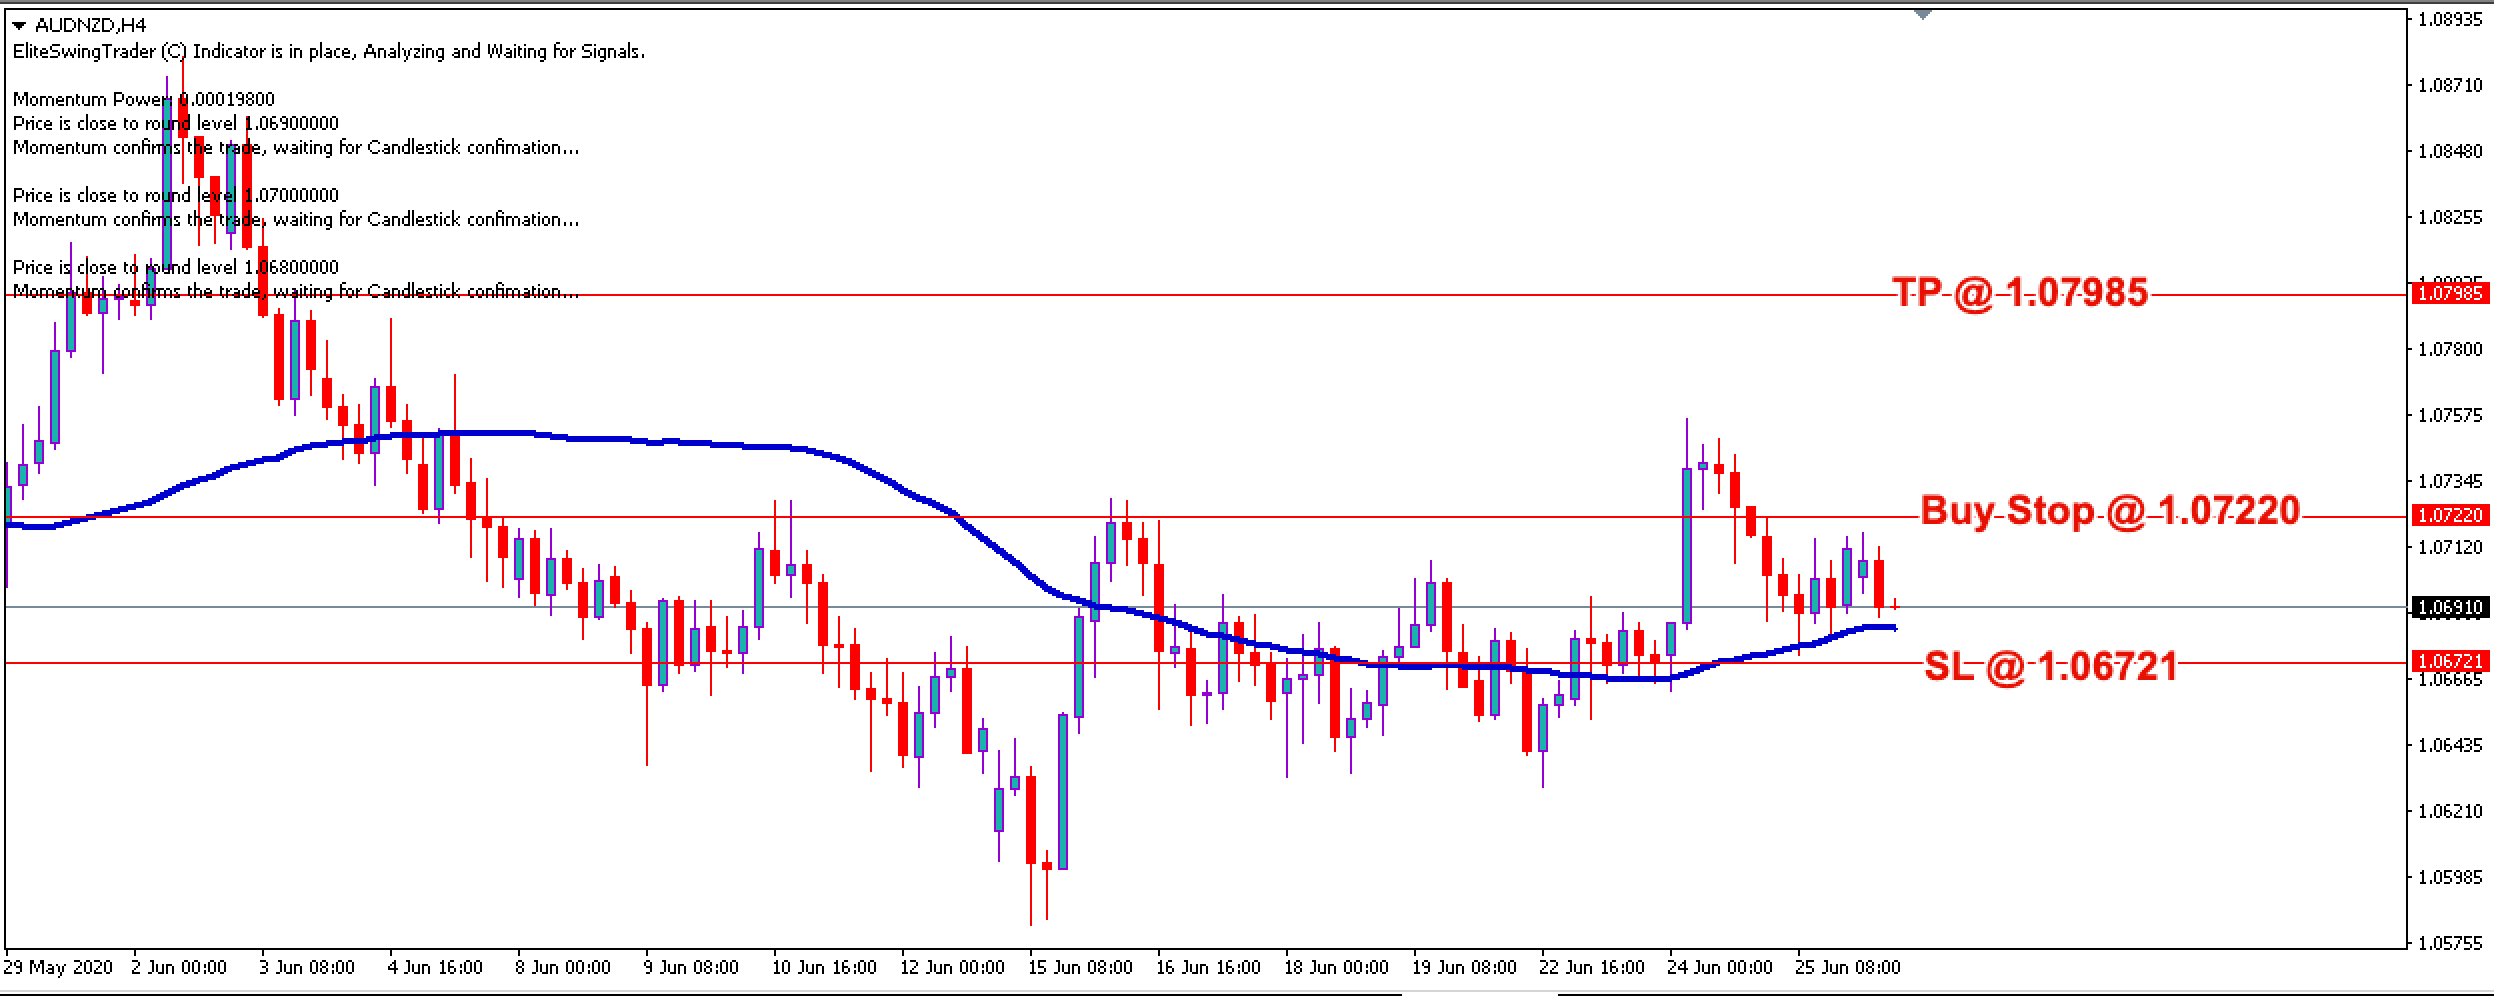 AUD/NZD Free Forex Trading Signals - 26th June 2020